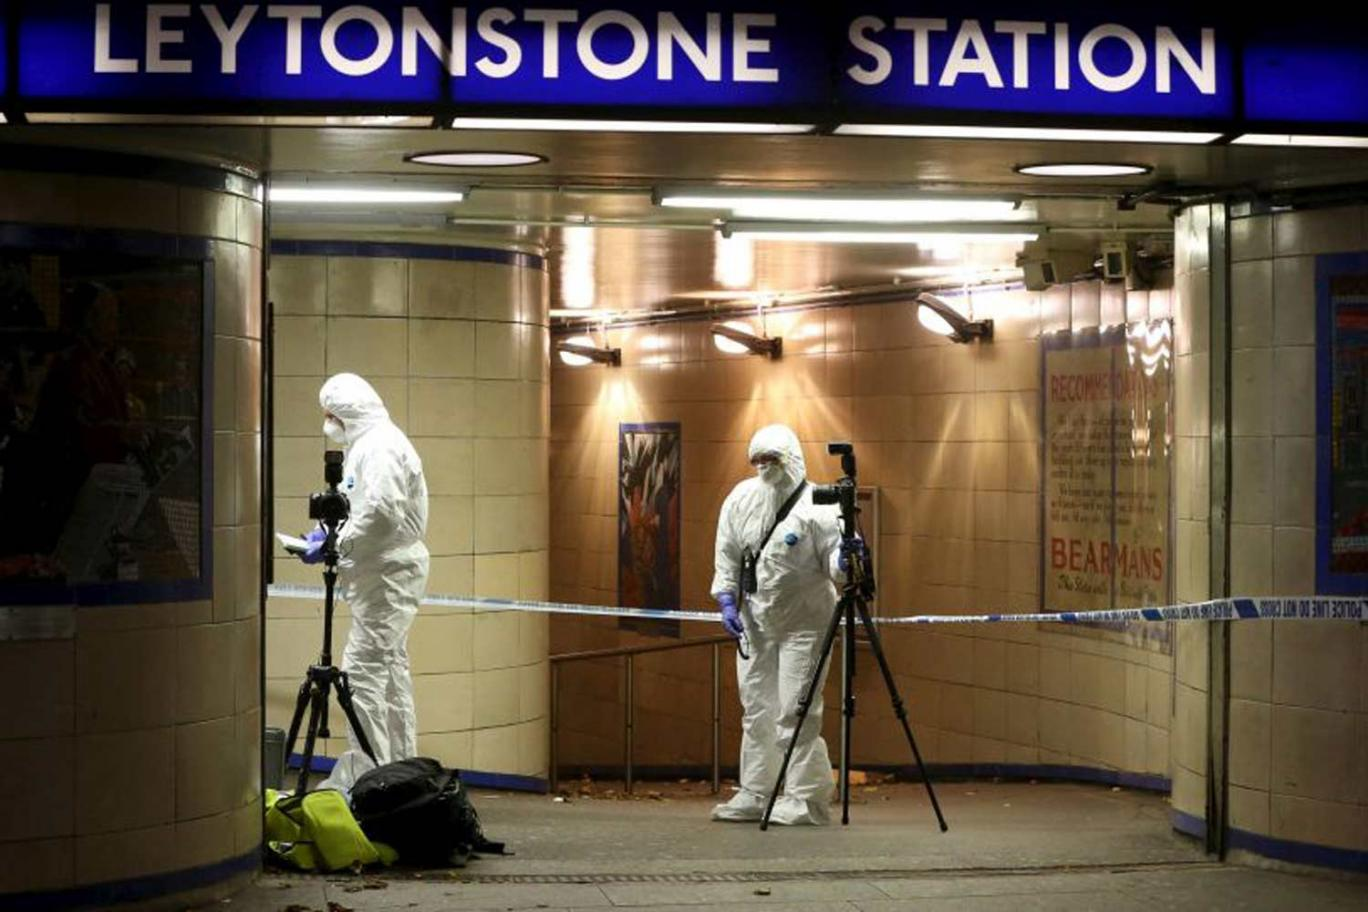 Forensics at Leytonstone